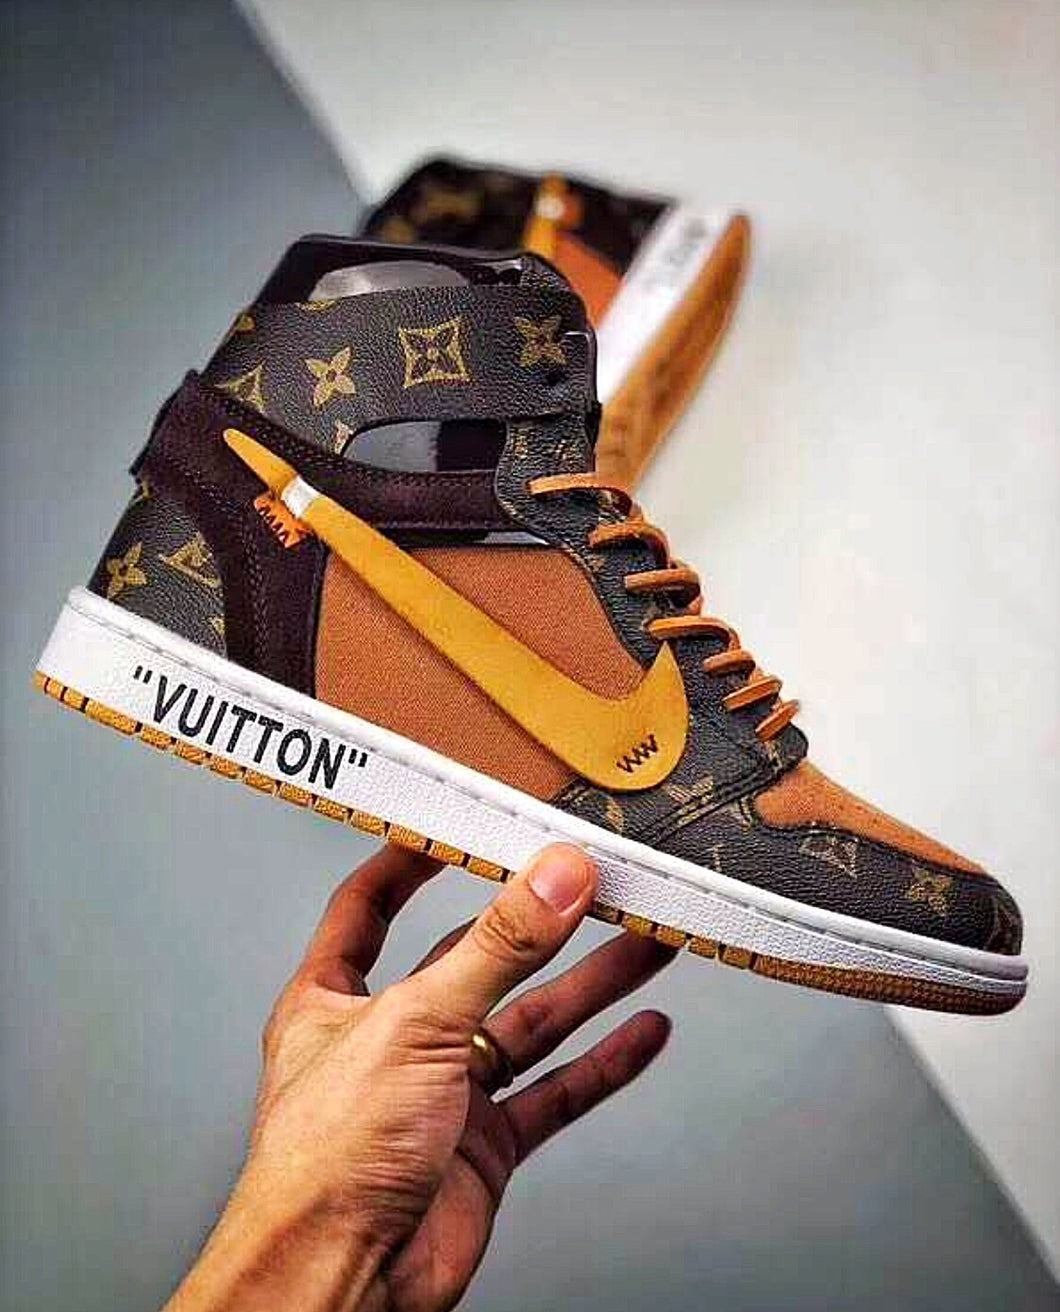 Off White X Air Jordan X Louis Vuitton Inspired Special Edition Sneakers